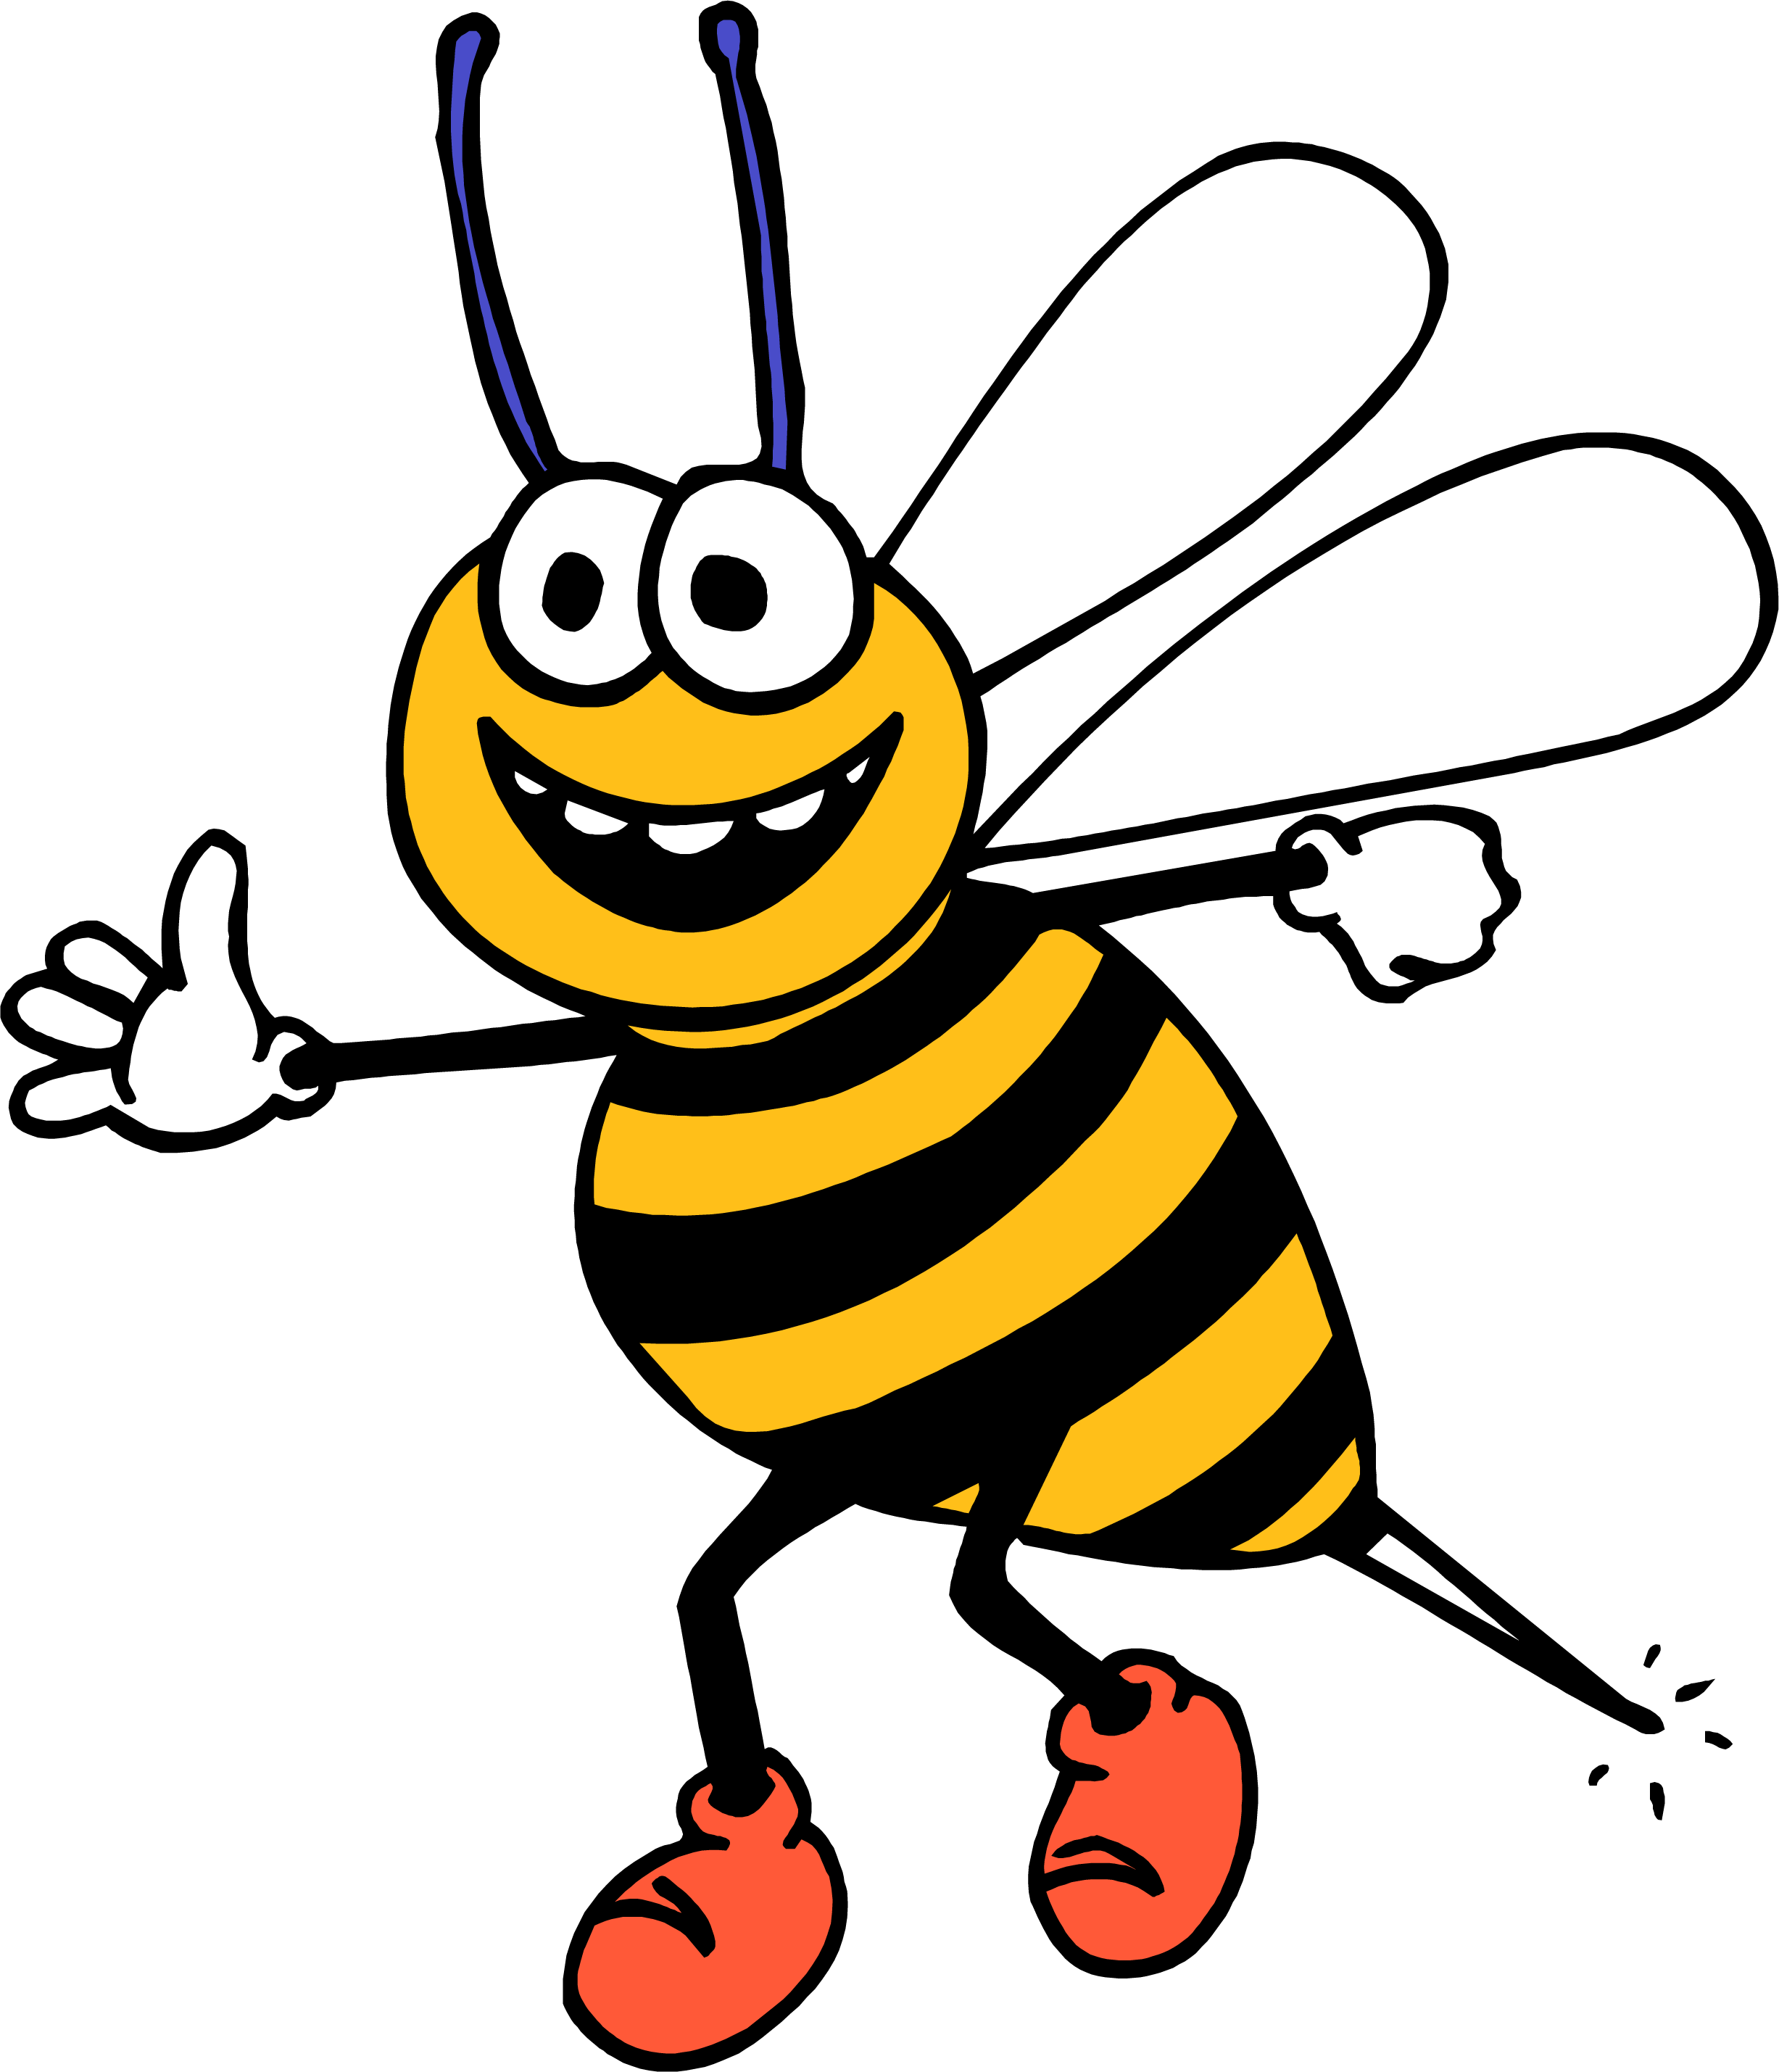 Honey bee at getdrawings. Insects clipart happy